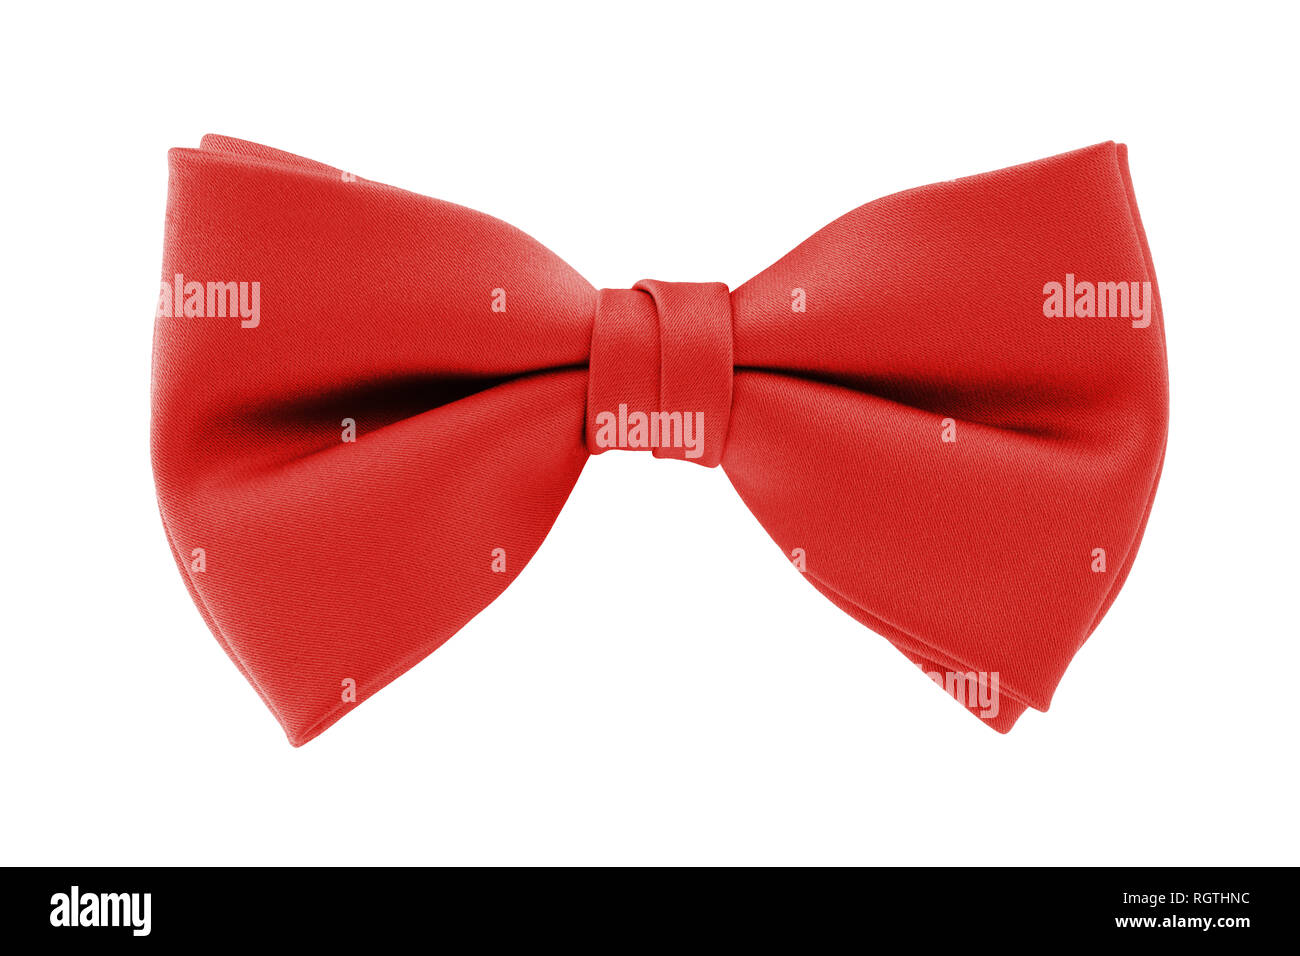 A red bow tie isolated on white background with clipping path - Stock Image